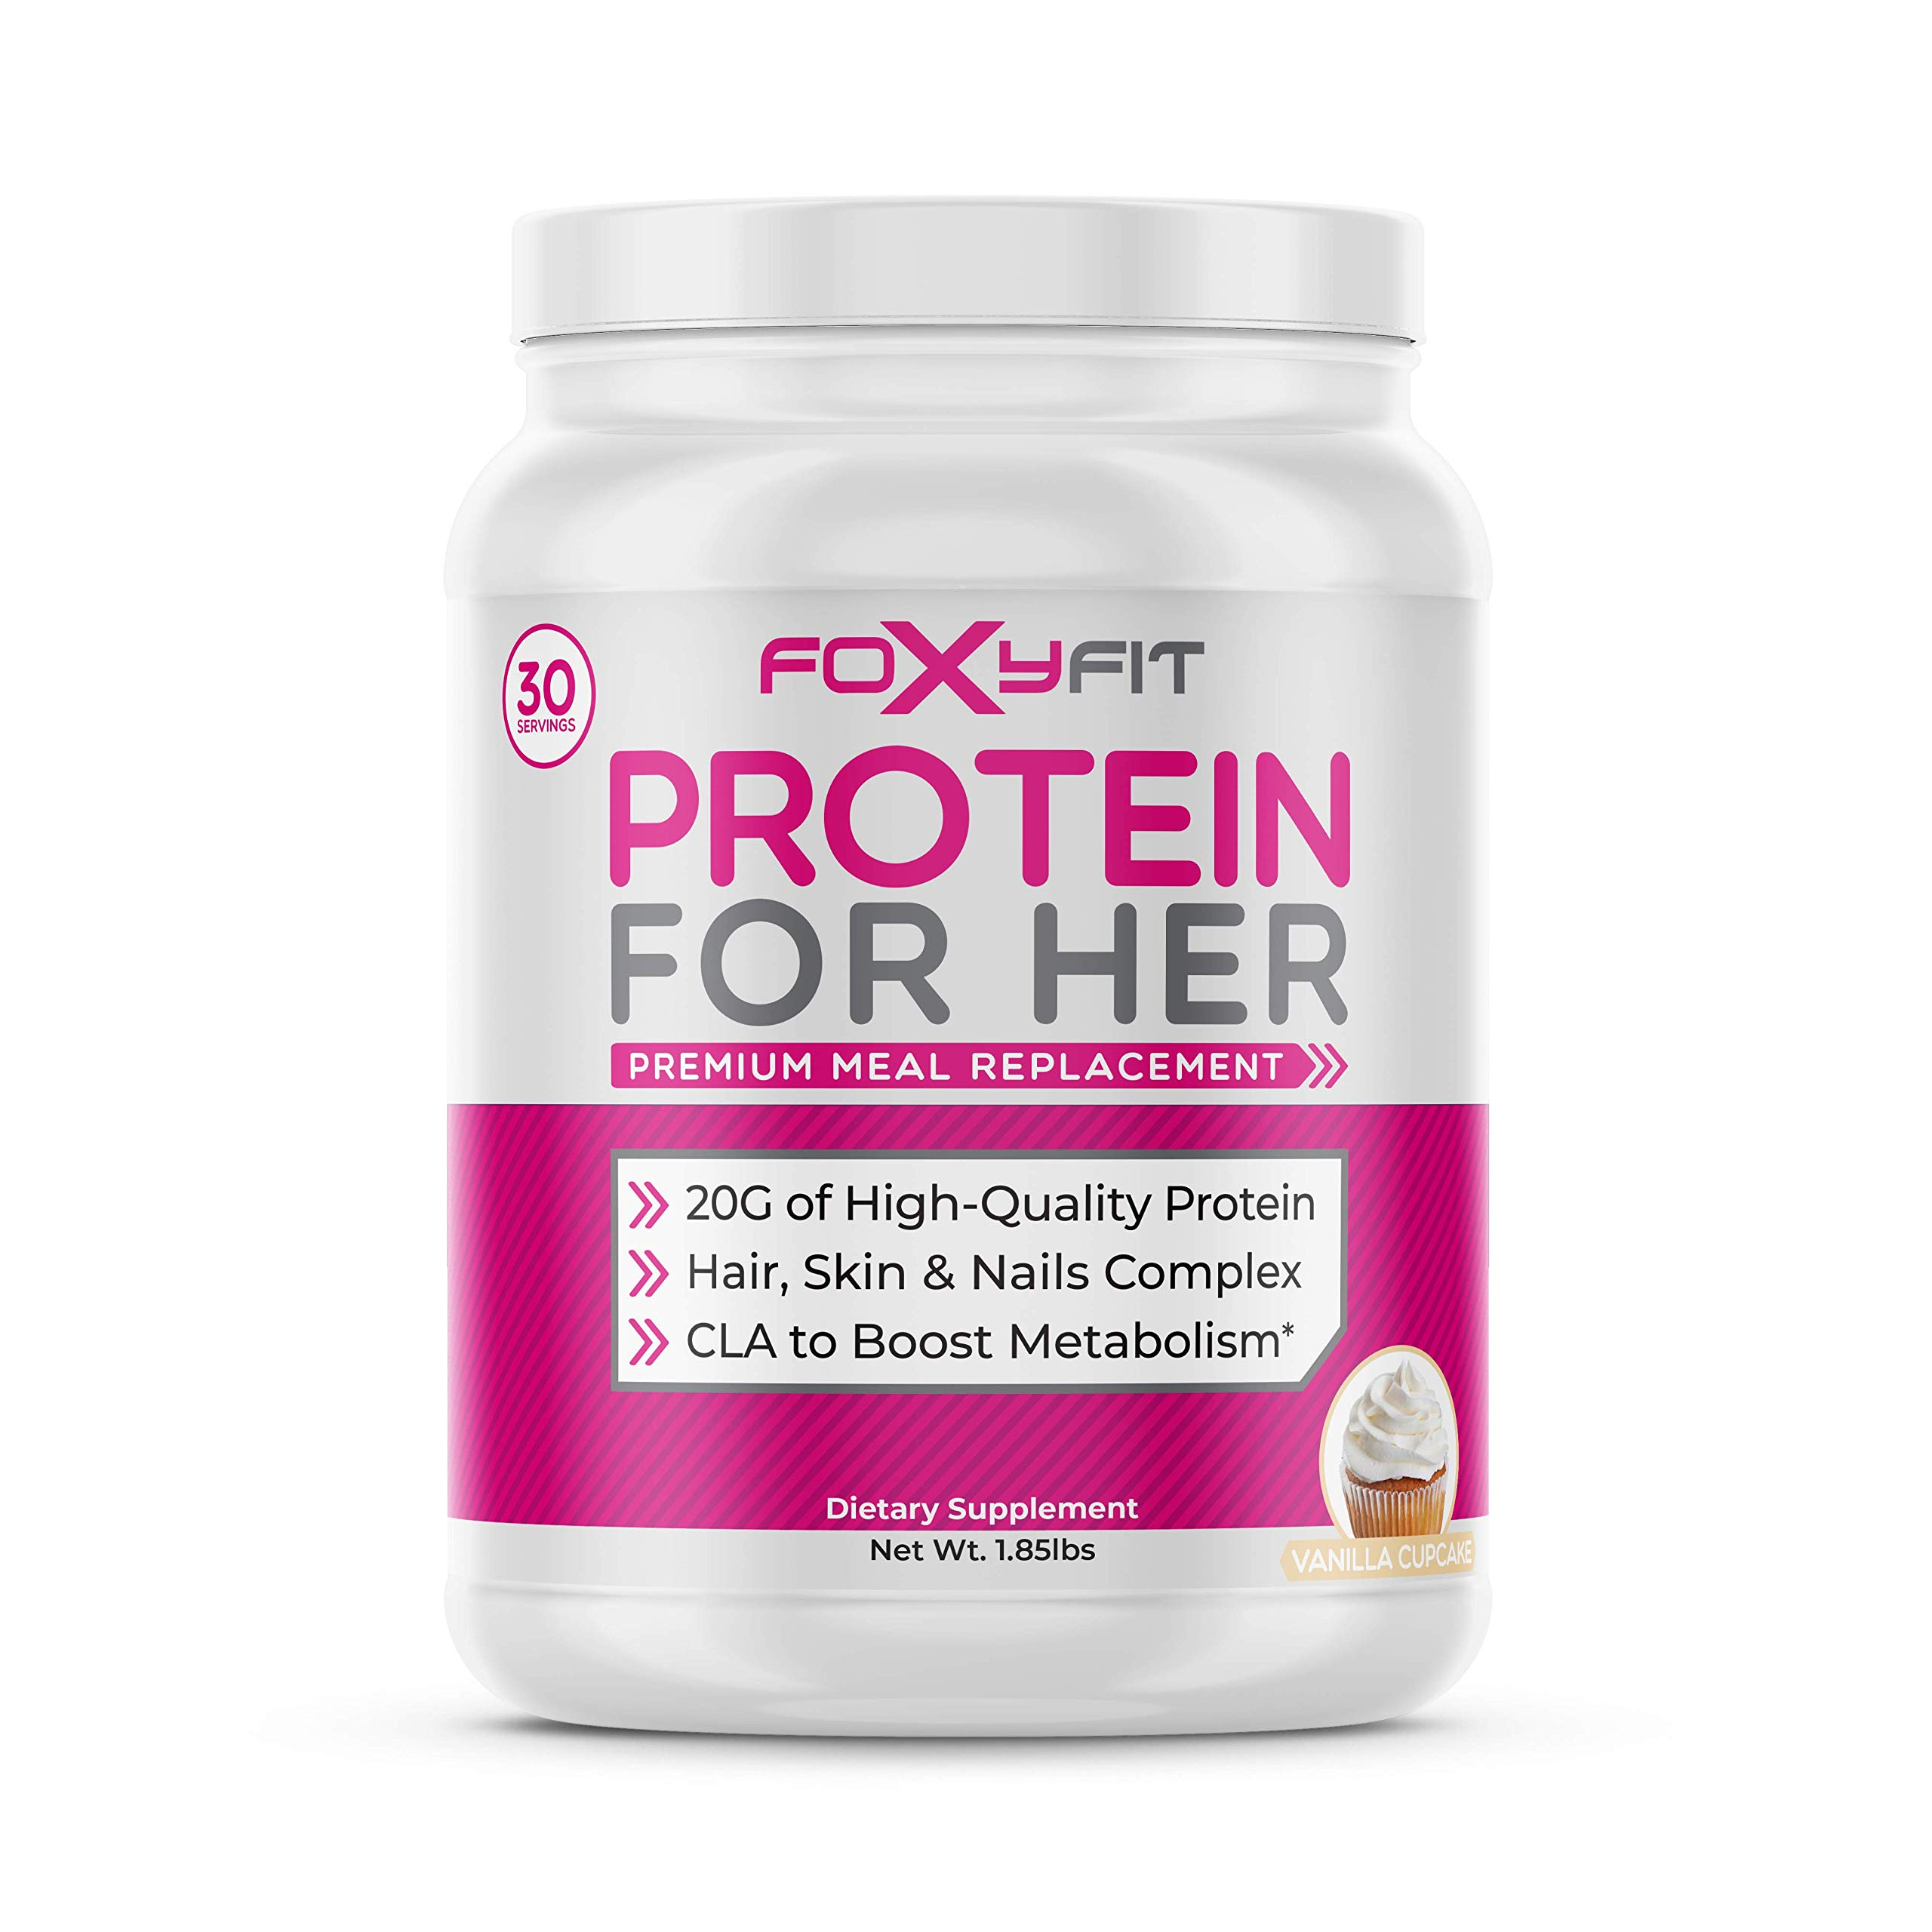 FoxyFit Protein for Her, Vanilla Cupcake Whey Protein Powder with CLA for Fat Loss and Biotin for Healthy Glow (1.85 lbs.) by FoxyFit